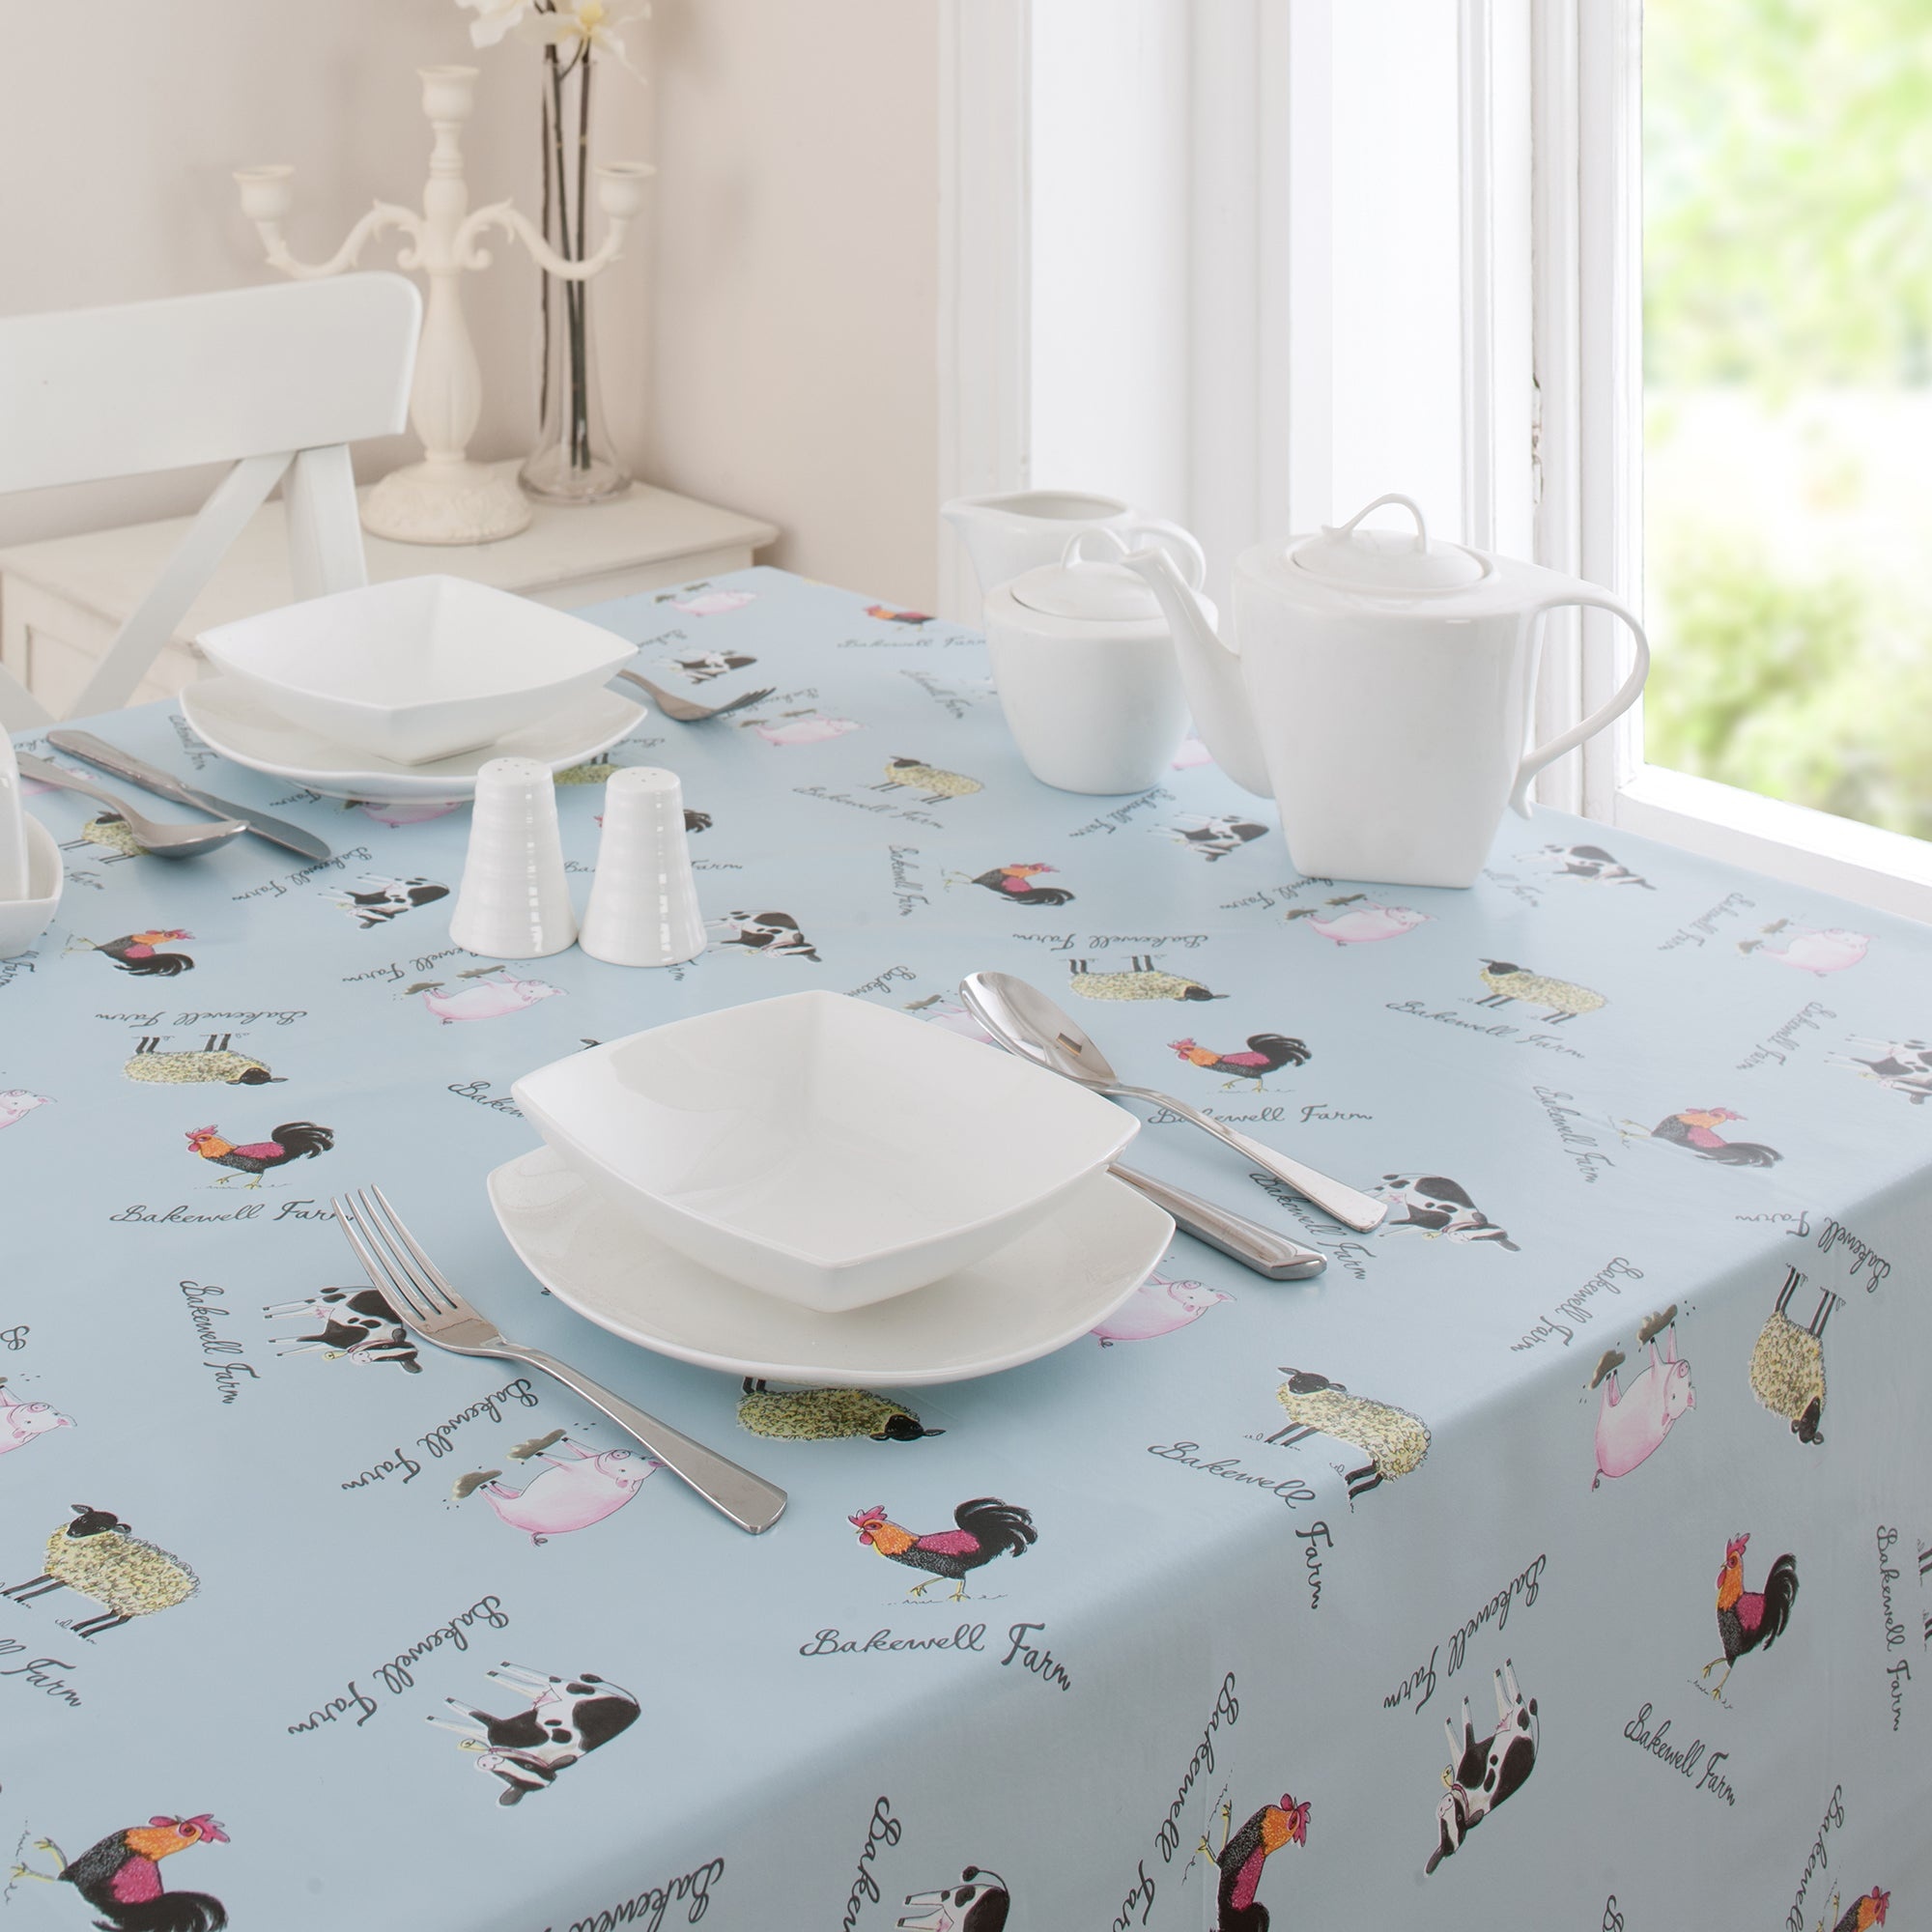 Bakewell Farm Collection PVC Tablecloth